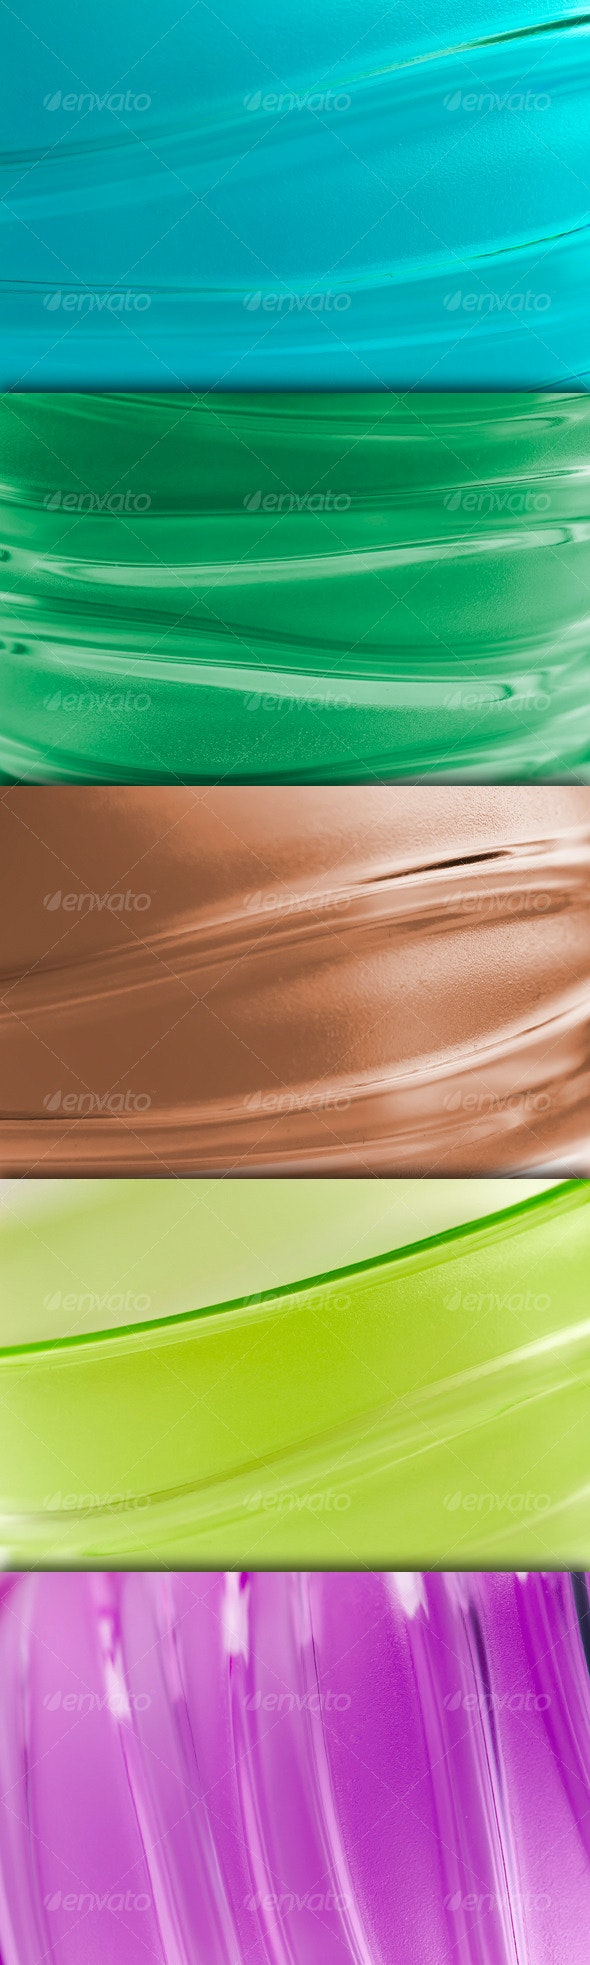 Glossy Abstract Wave Wallpaper  - Abstract Backgrounds